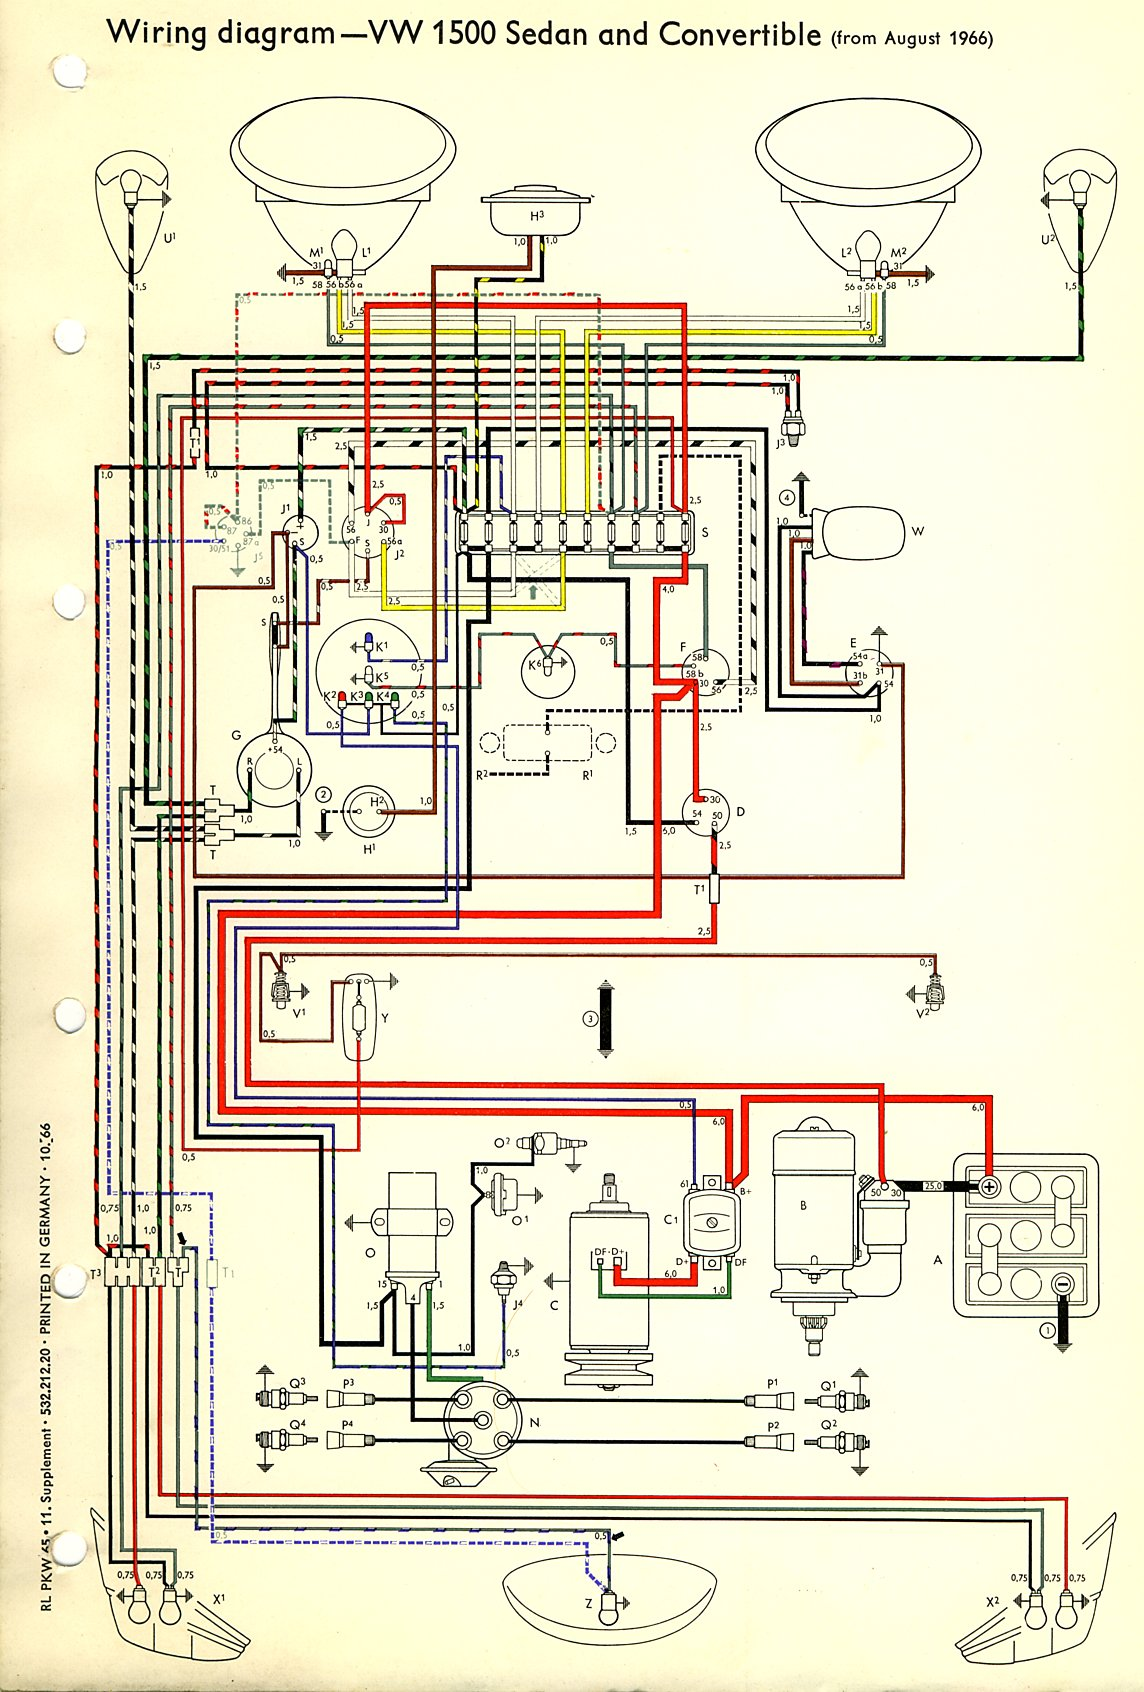 1967 Engine Wiring Diagram Opinions About 67 Mustang Images Gallery